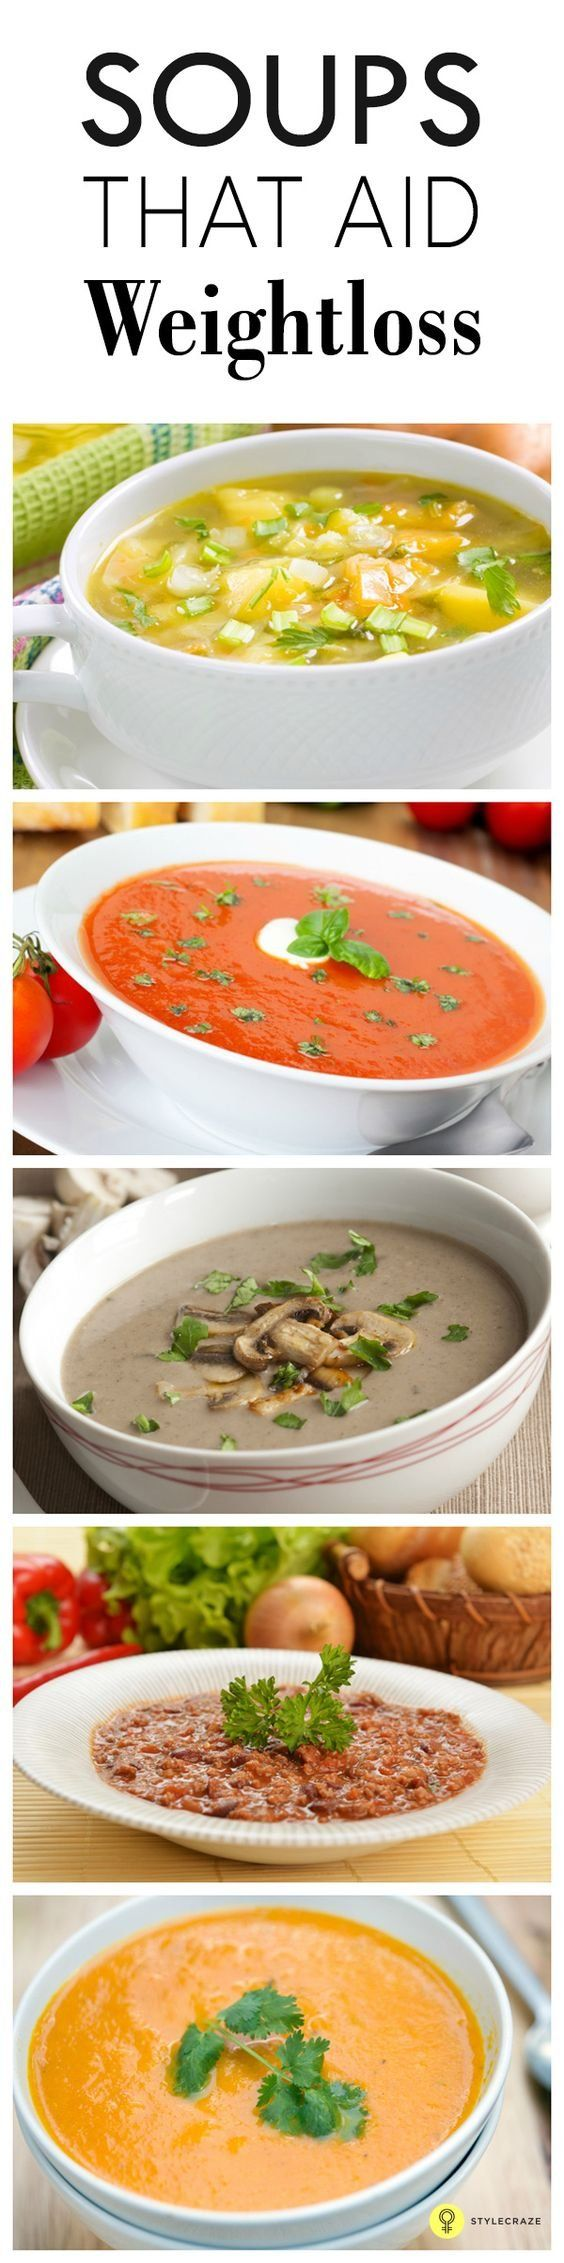 Here are some soups for weight loss that will help you